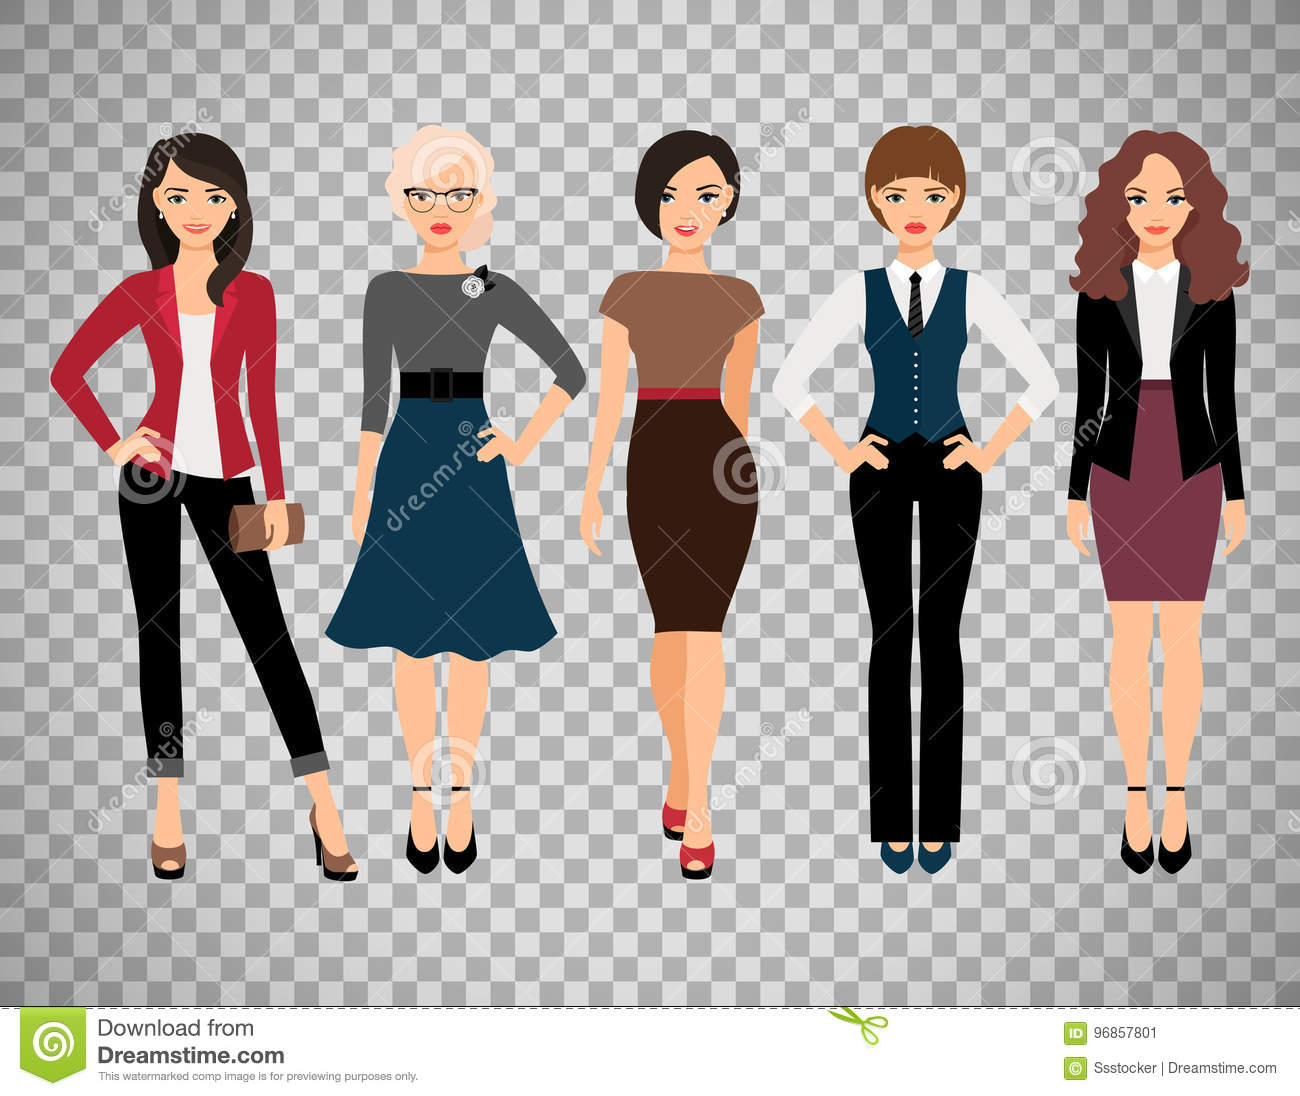 b2833461311 Cute young women in different style clothes vector illustration.  Businesswoman and office girl character isolated on transparent background